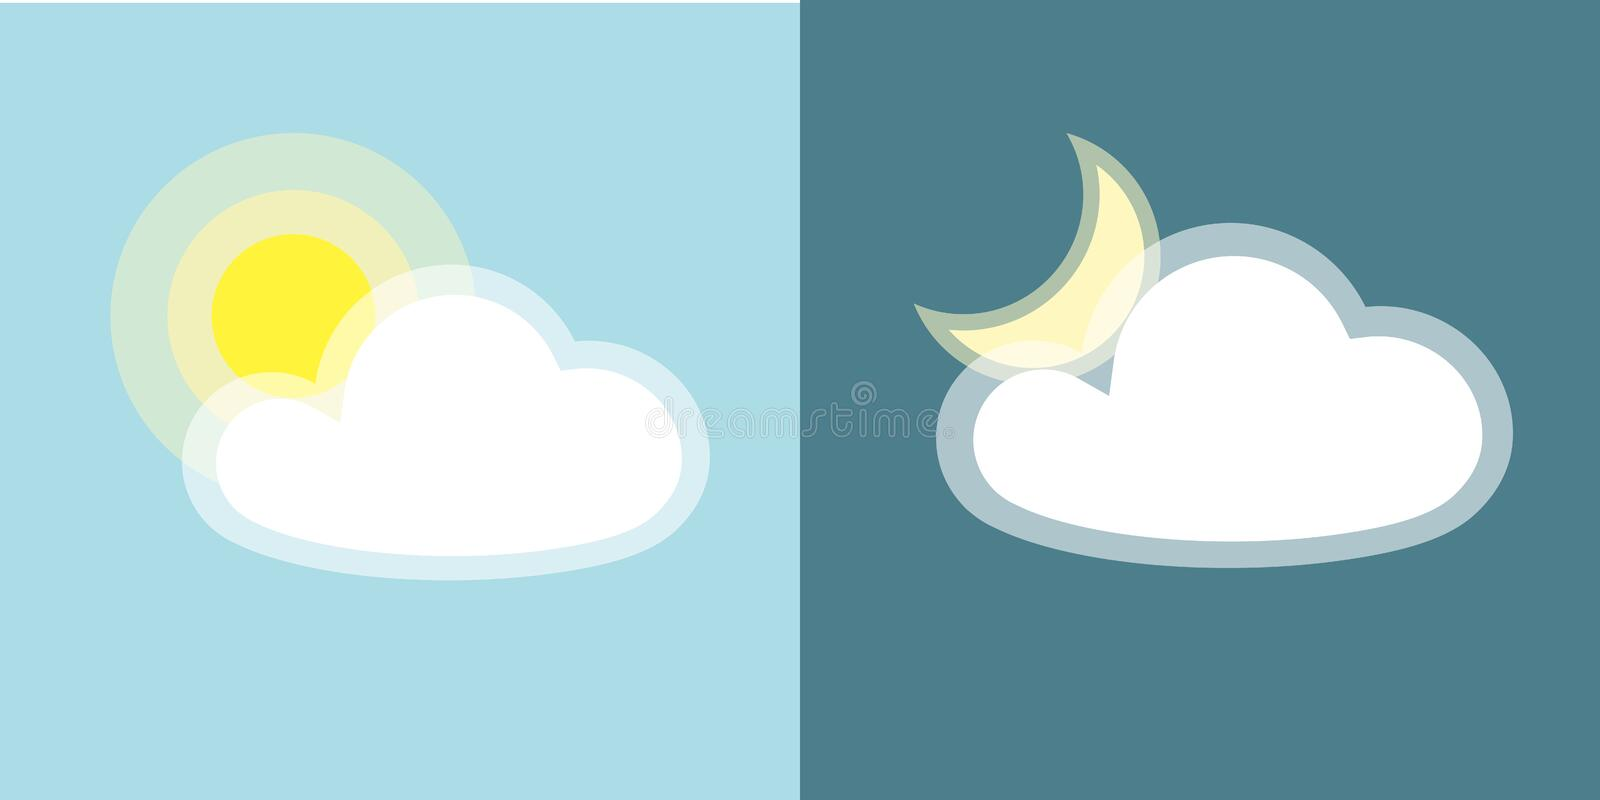 Sun moon clouds icon Simple symbol of day and night applications Isolated on blue background Day and night weather icon Flat. Sun, moon, clouds icon. Simple stock illustration